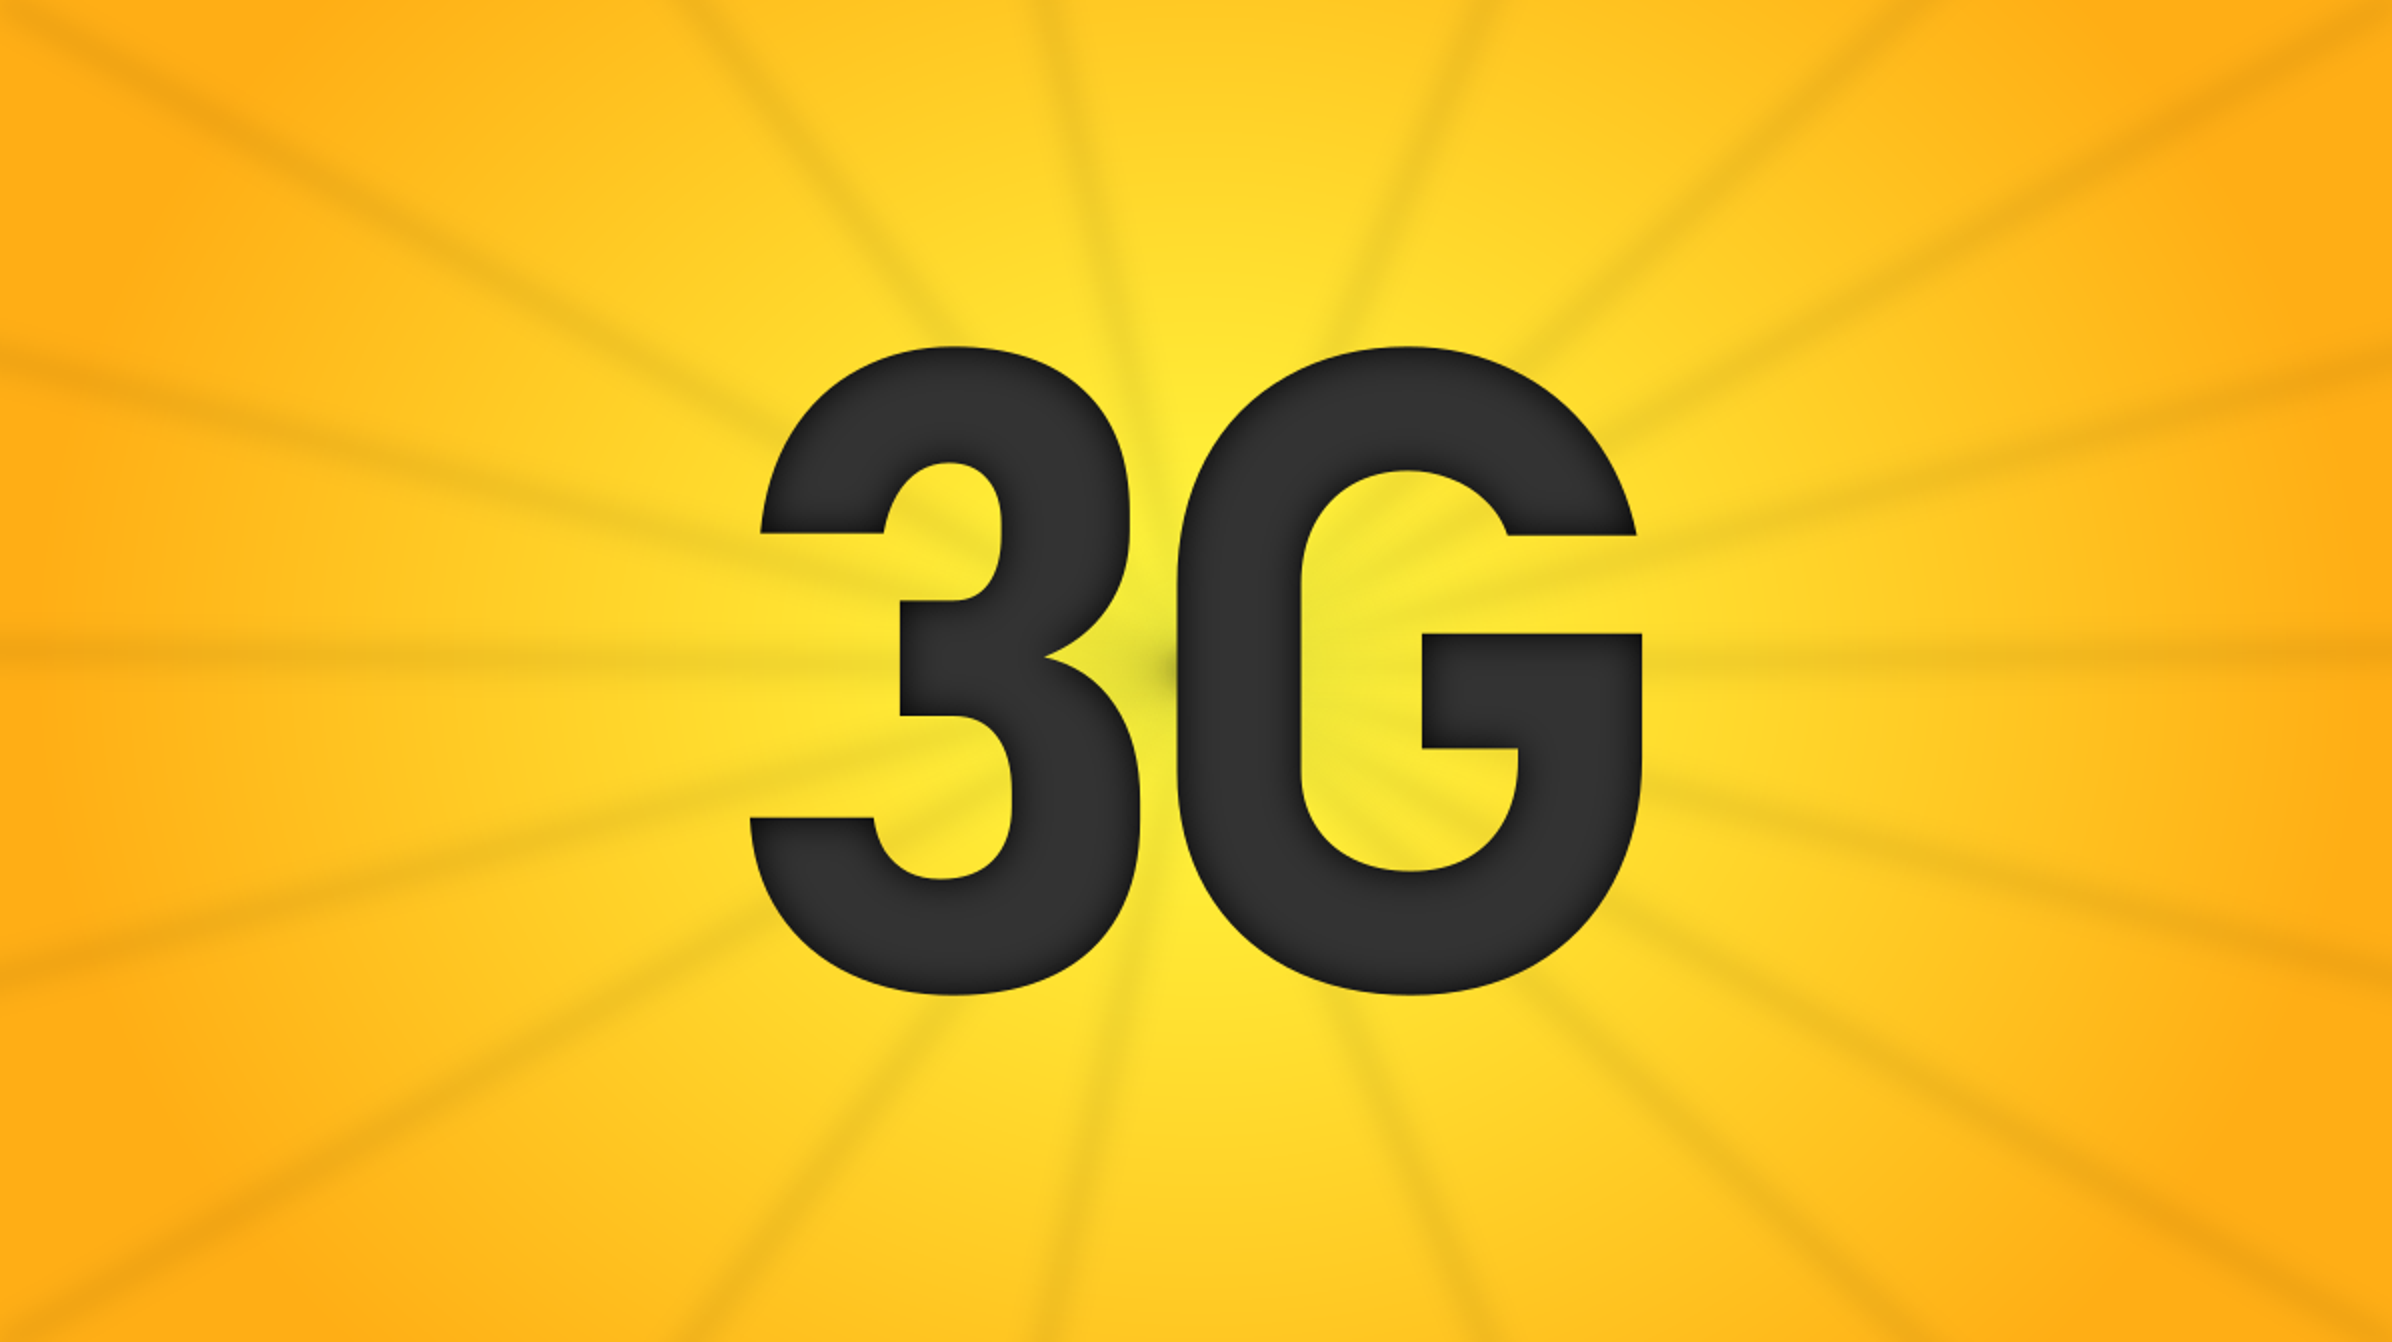 When Are U.S. Carriers Shutting Down Their 3G Networks?